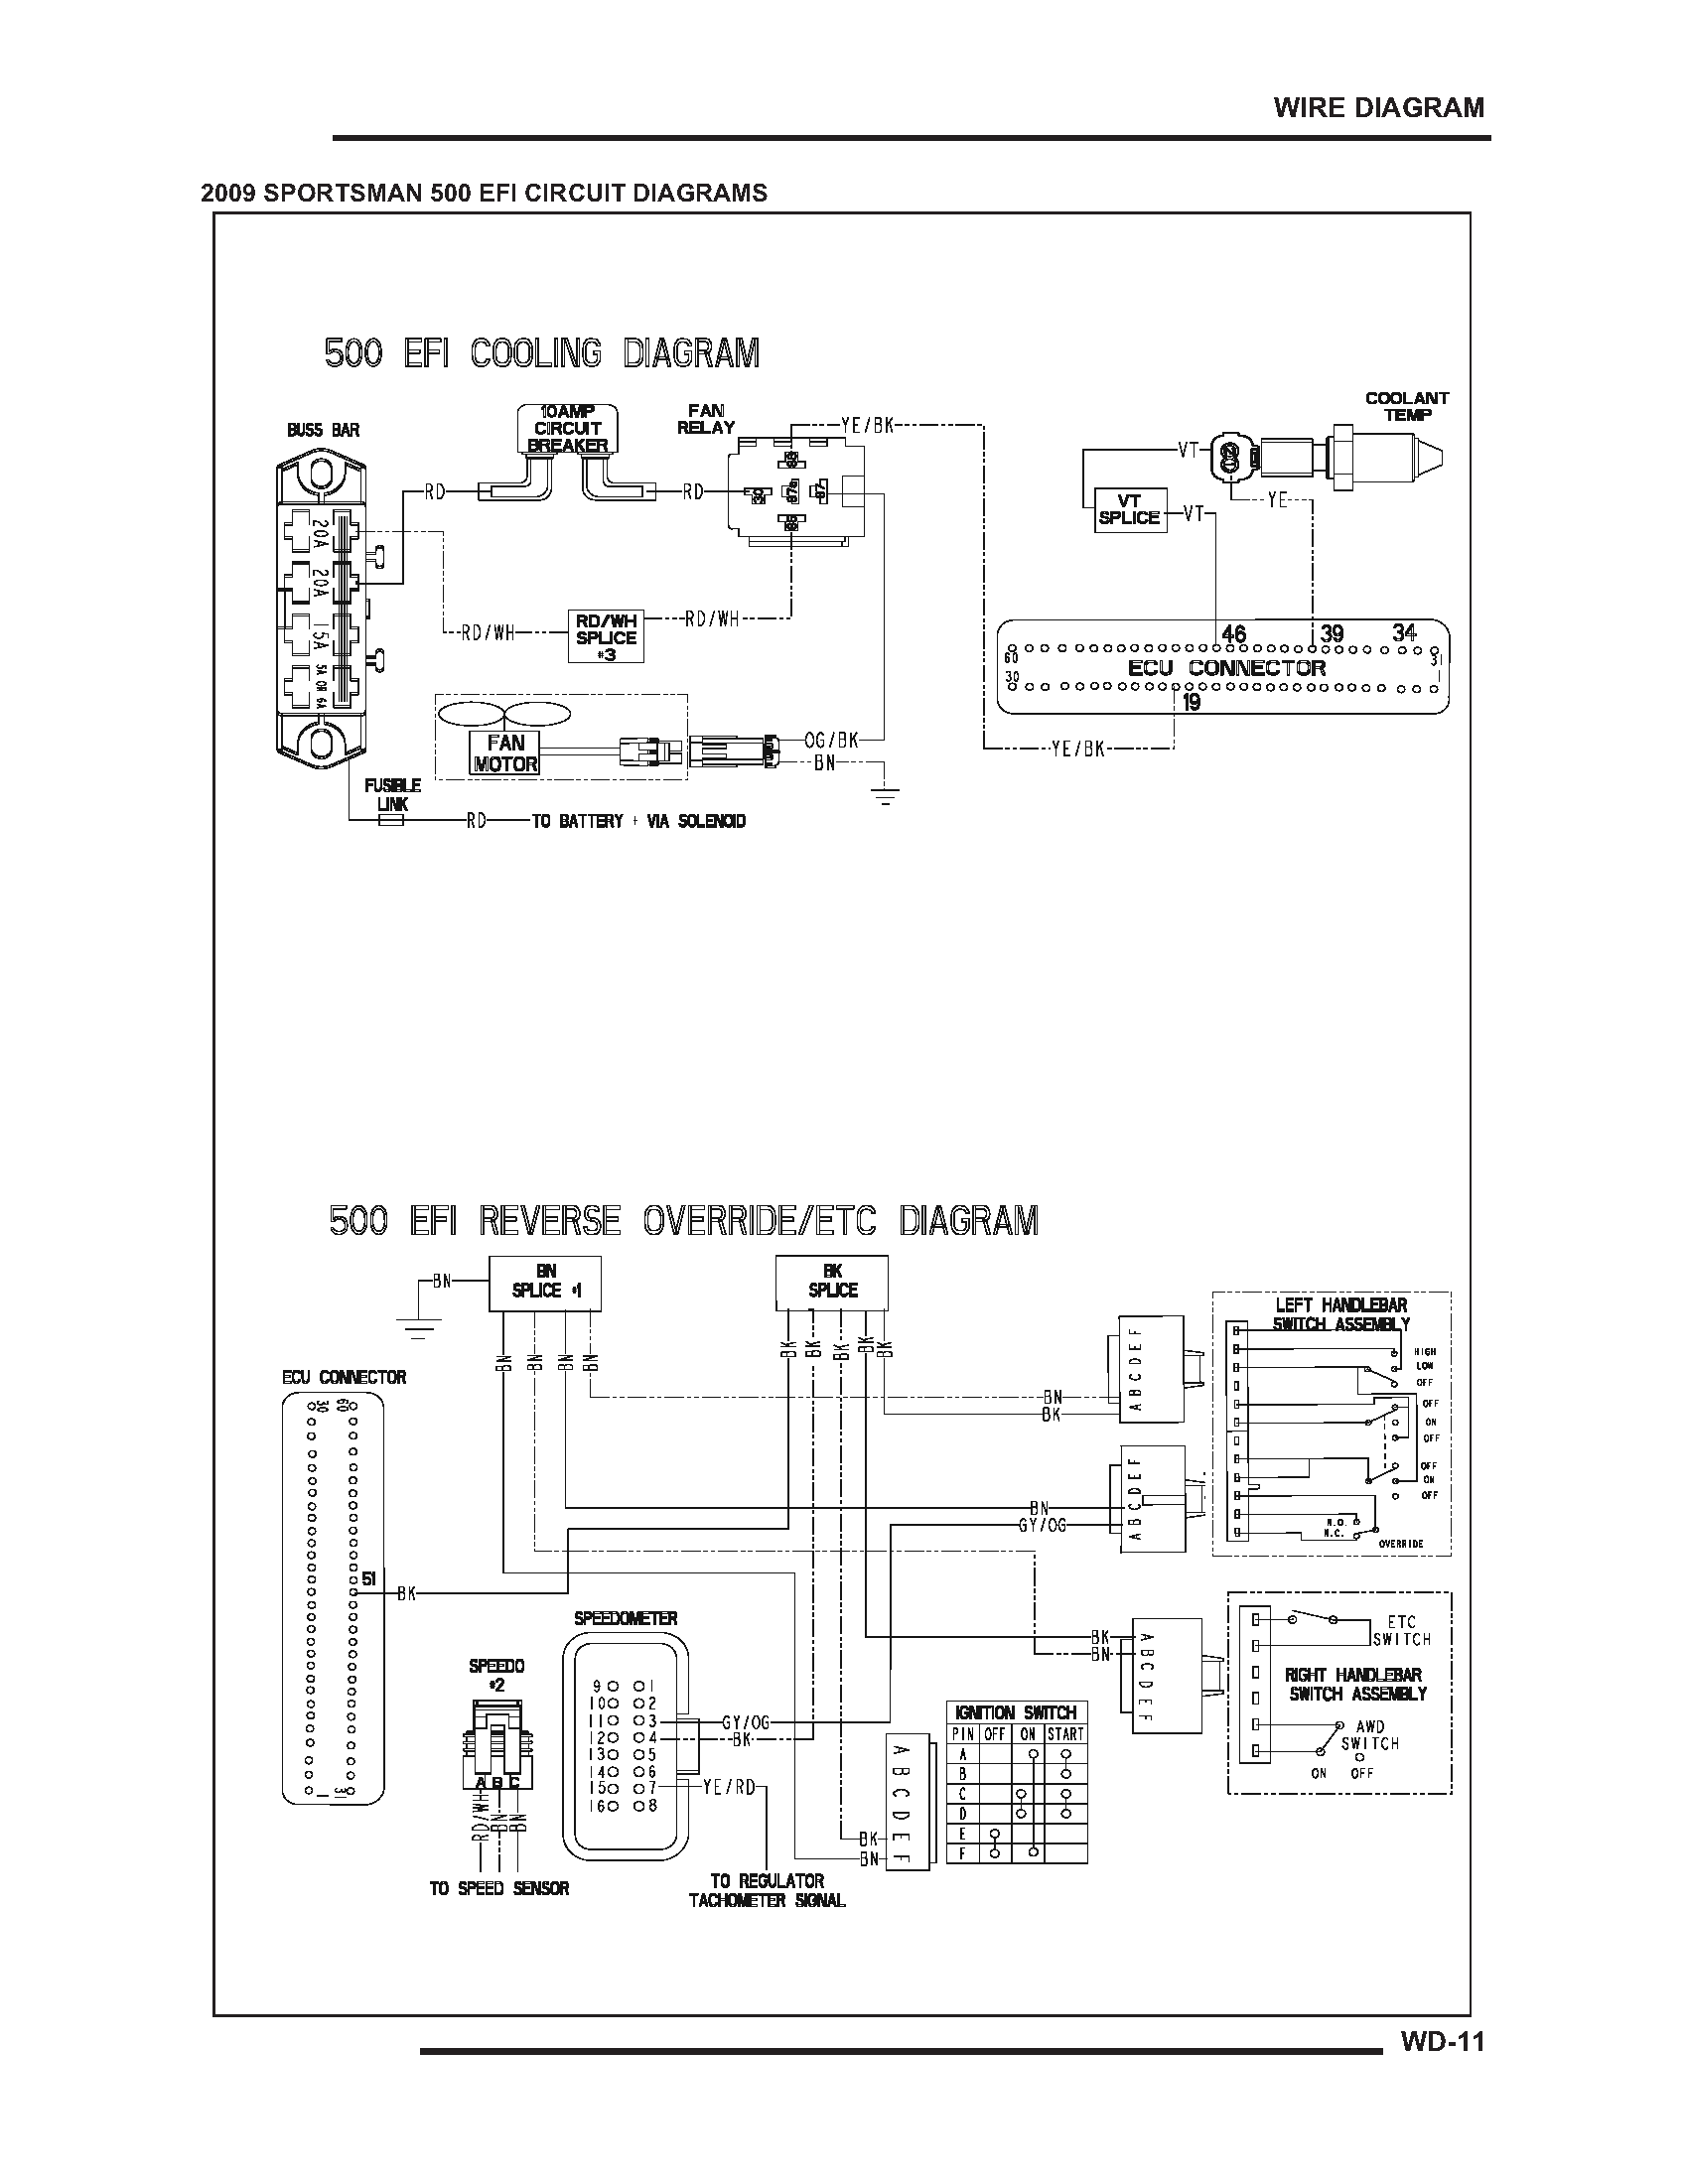 cooling system - polaris atv forum polaris sportsman 500 wiring diagram for ranger 2010 polaris sportsman 500 wiring diagram